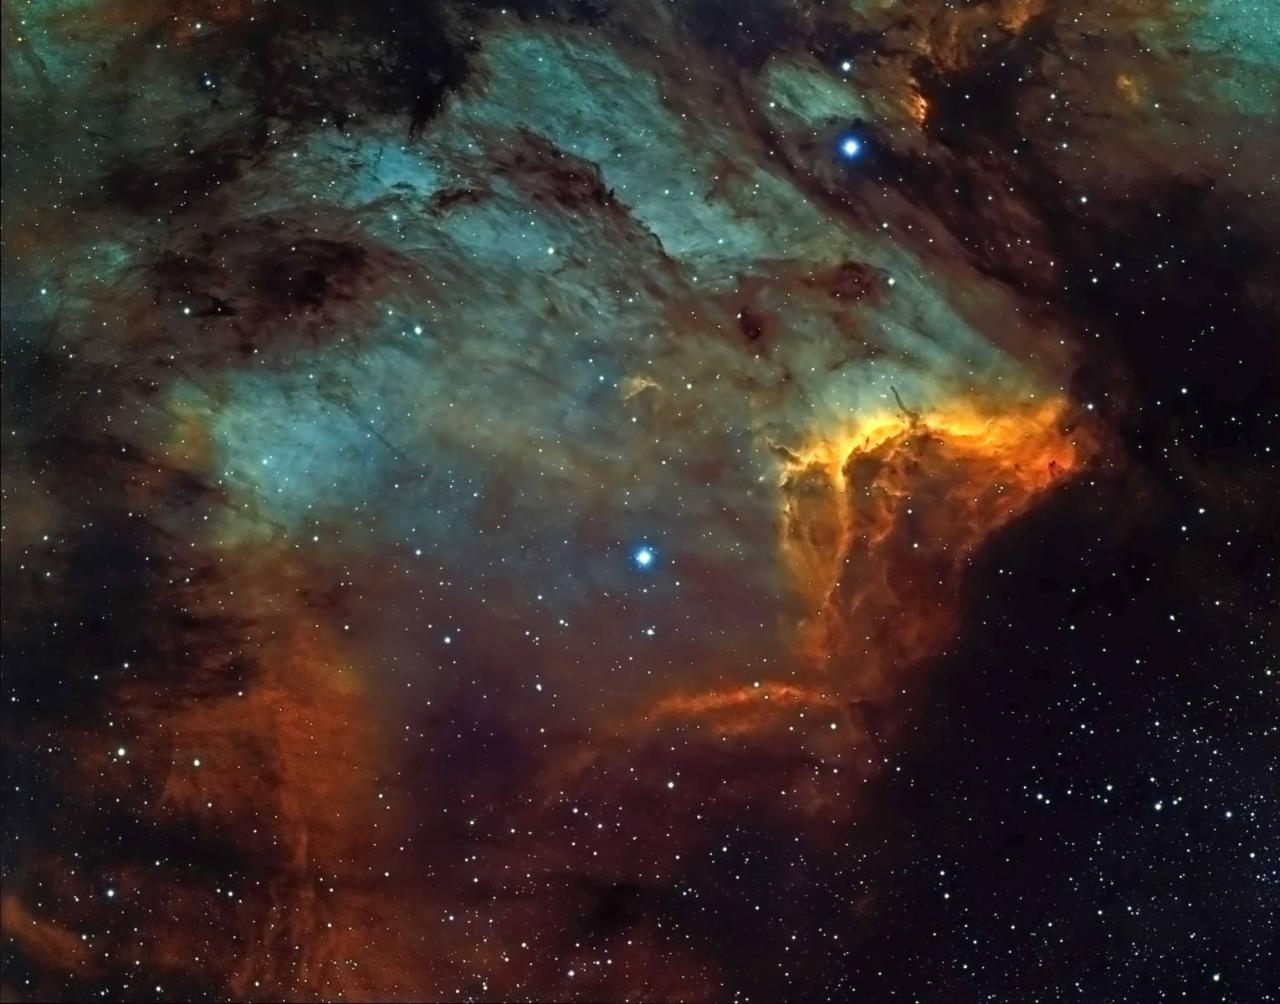 ic5070hubble4areprocess